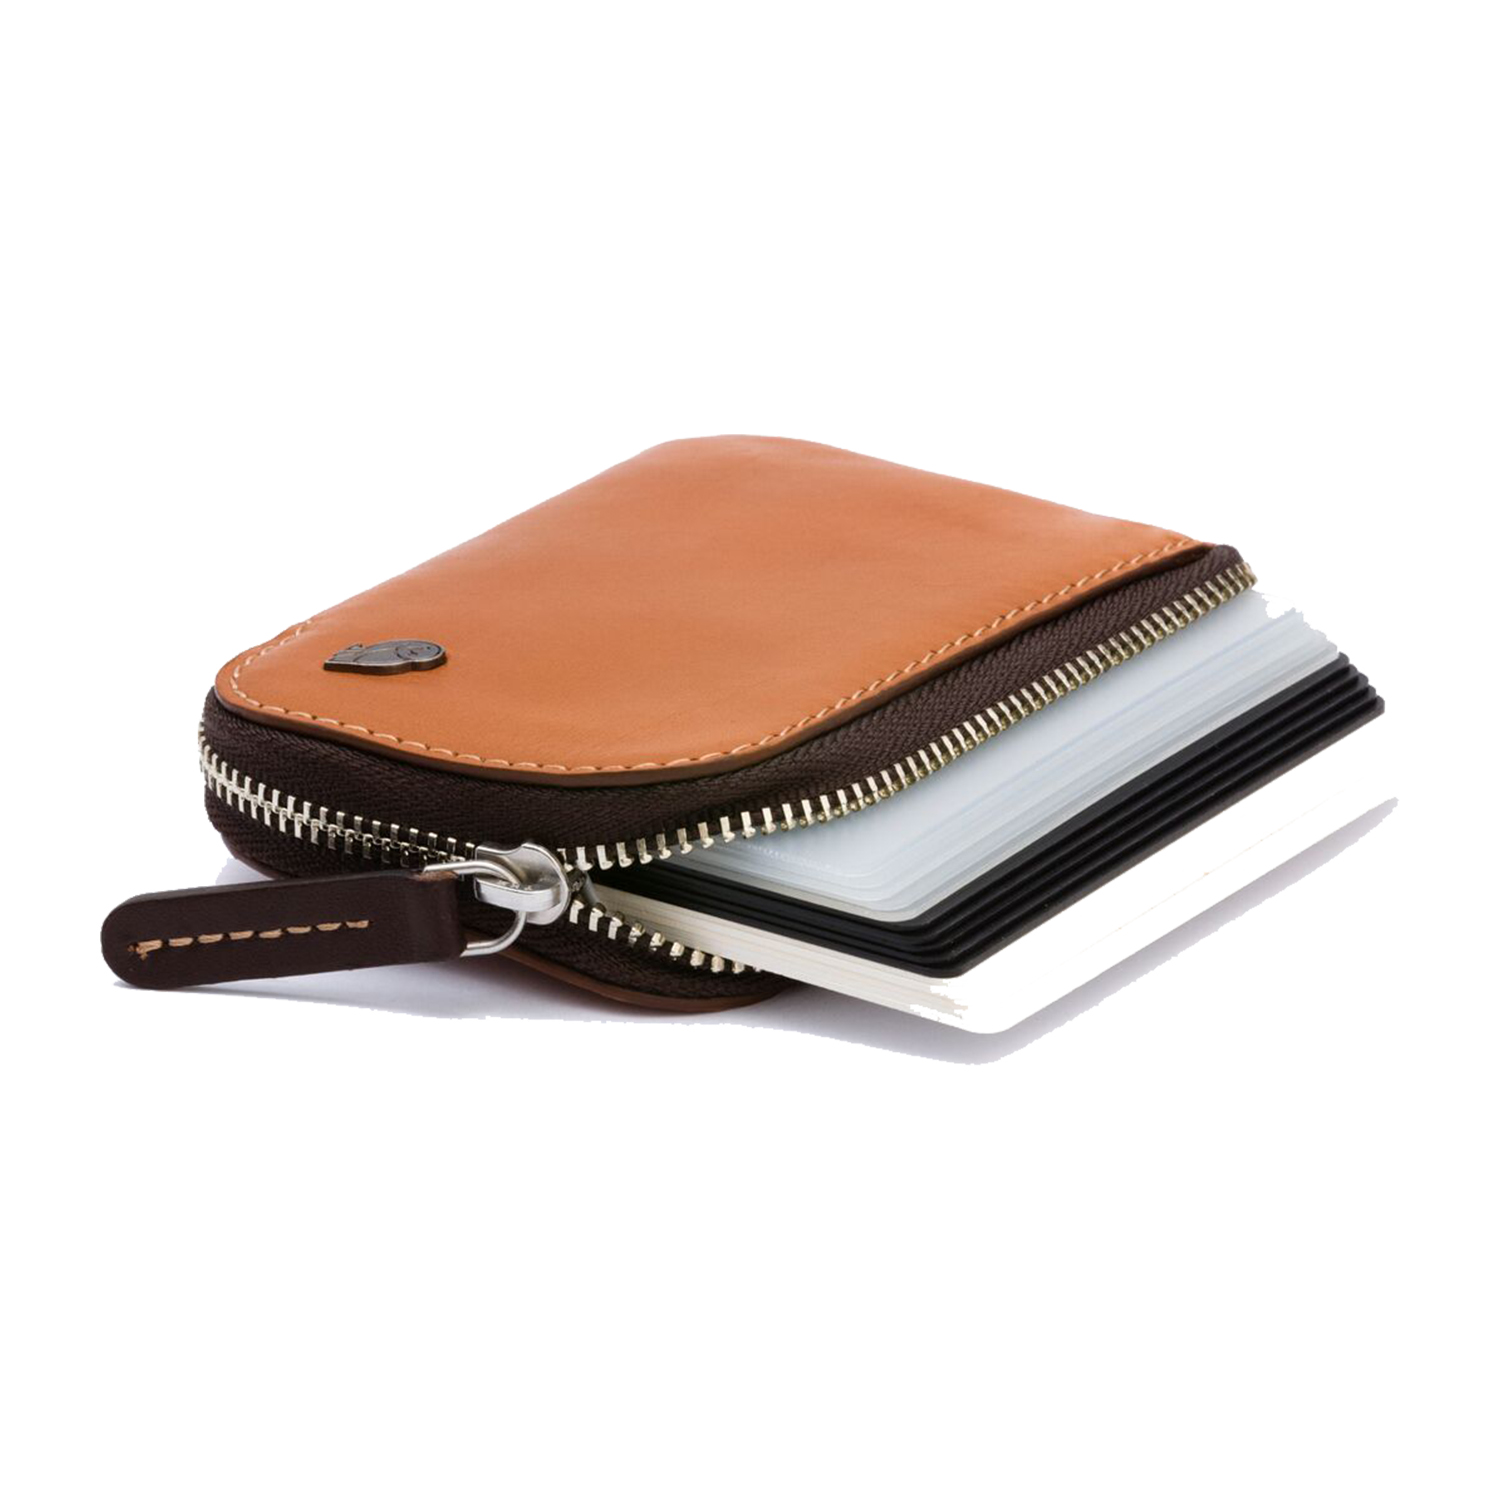 0d9d8790275 Buy Bellroy Card Pocket - Caramel in Singapore   Malaysia - The Wallet Shop